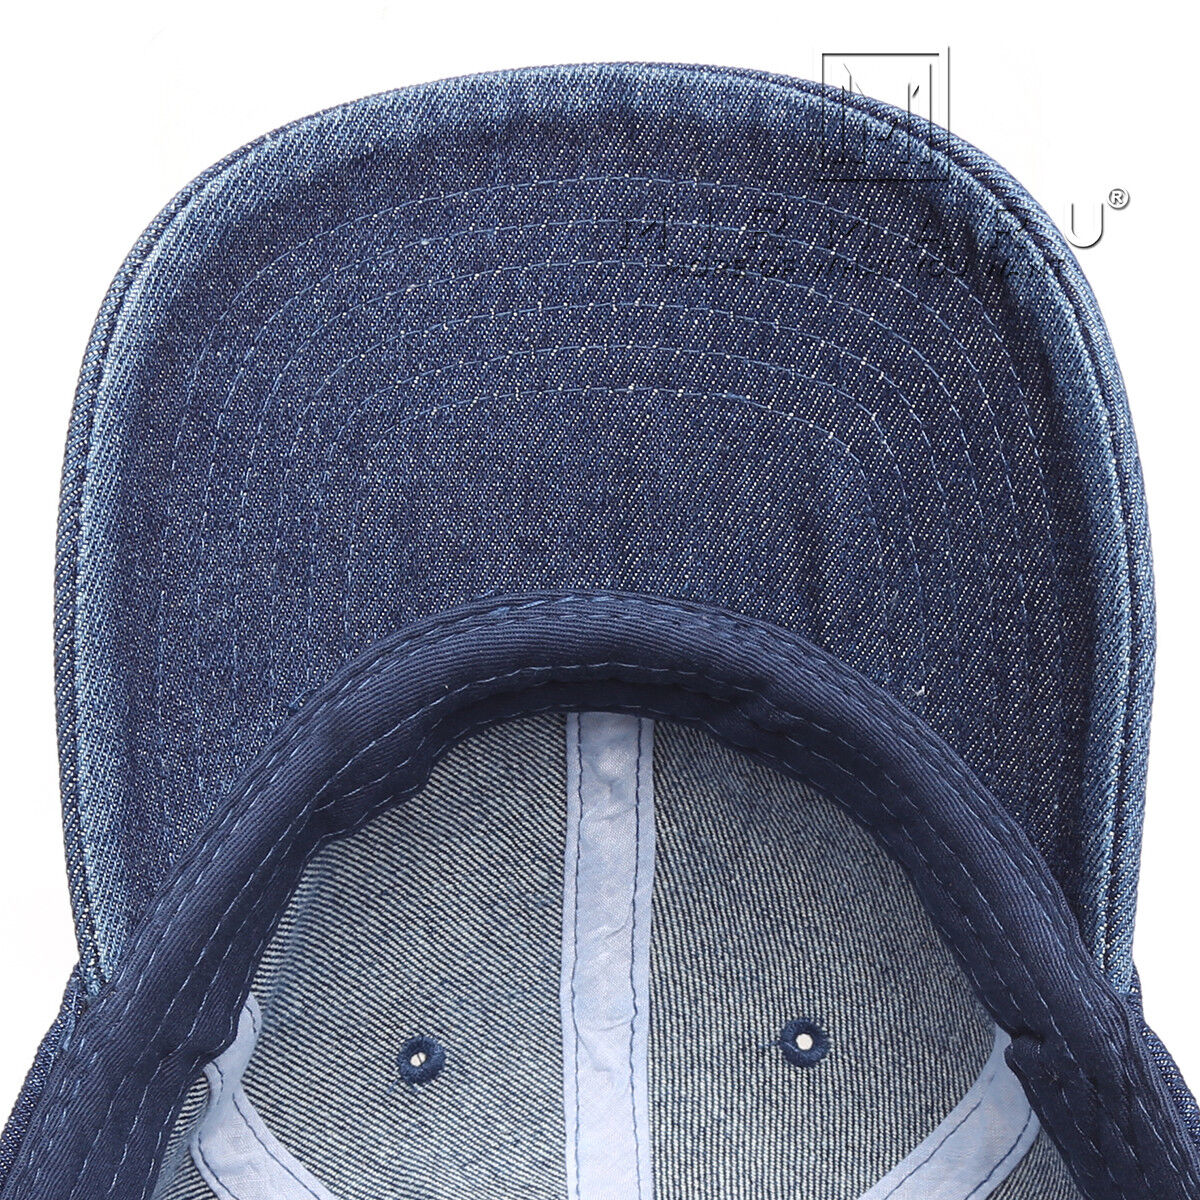 MIRMARU Summer Casual Baseball 100% Cotton Denim Baseball Casual Cap Hat With Adjustable Strap. fc7600